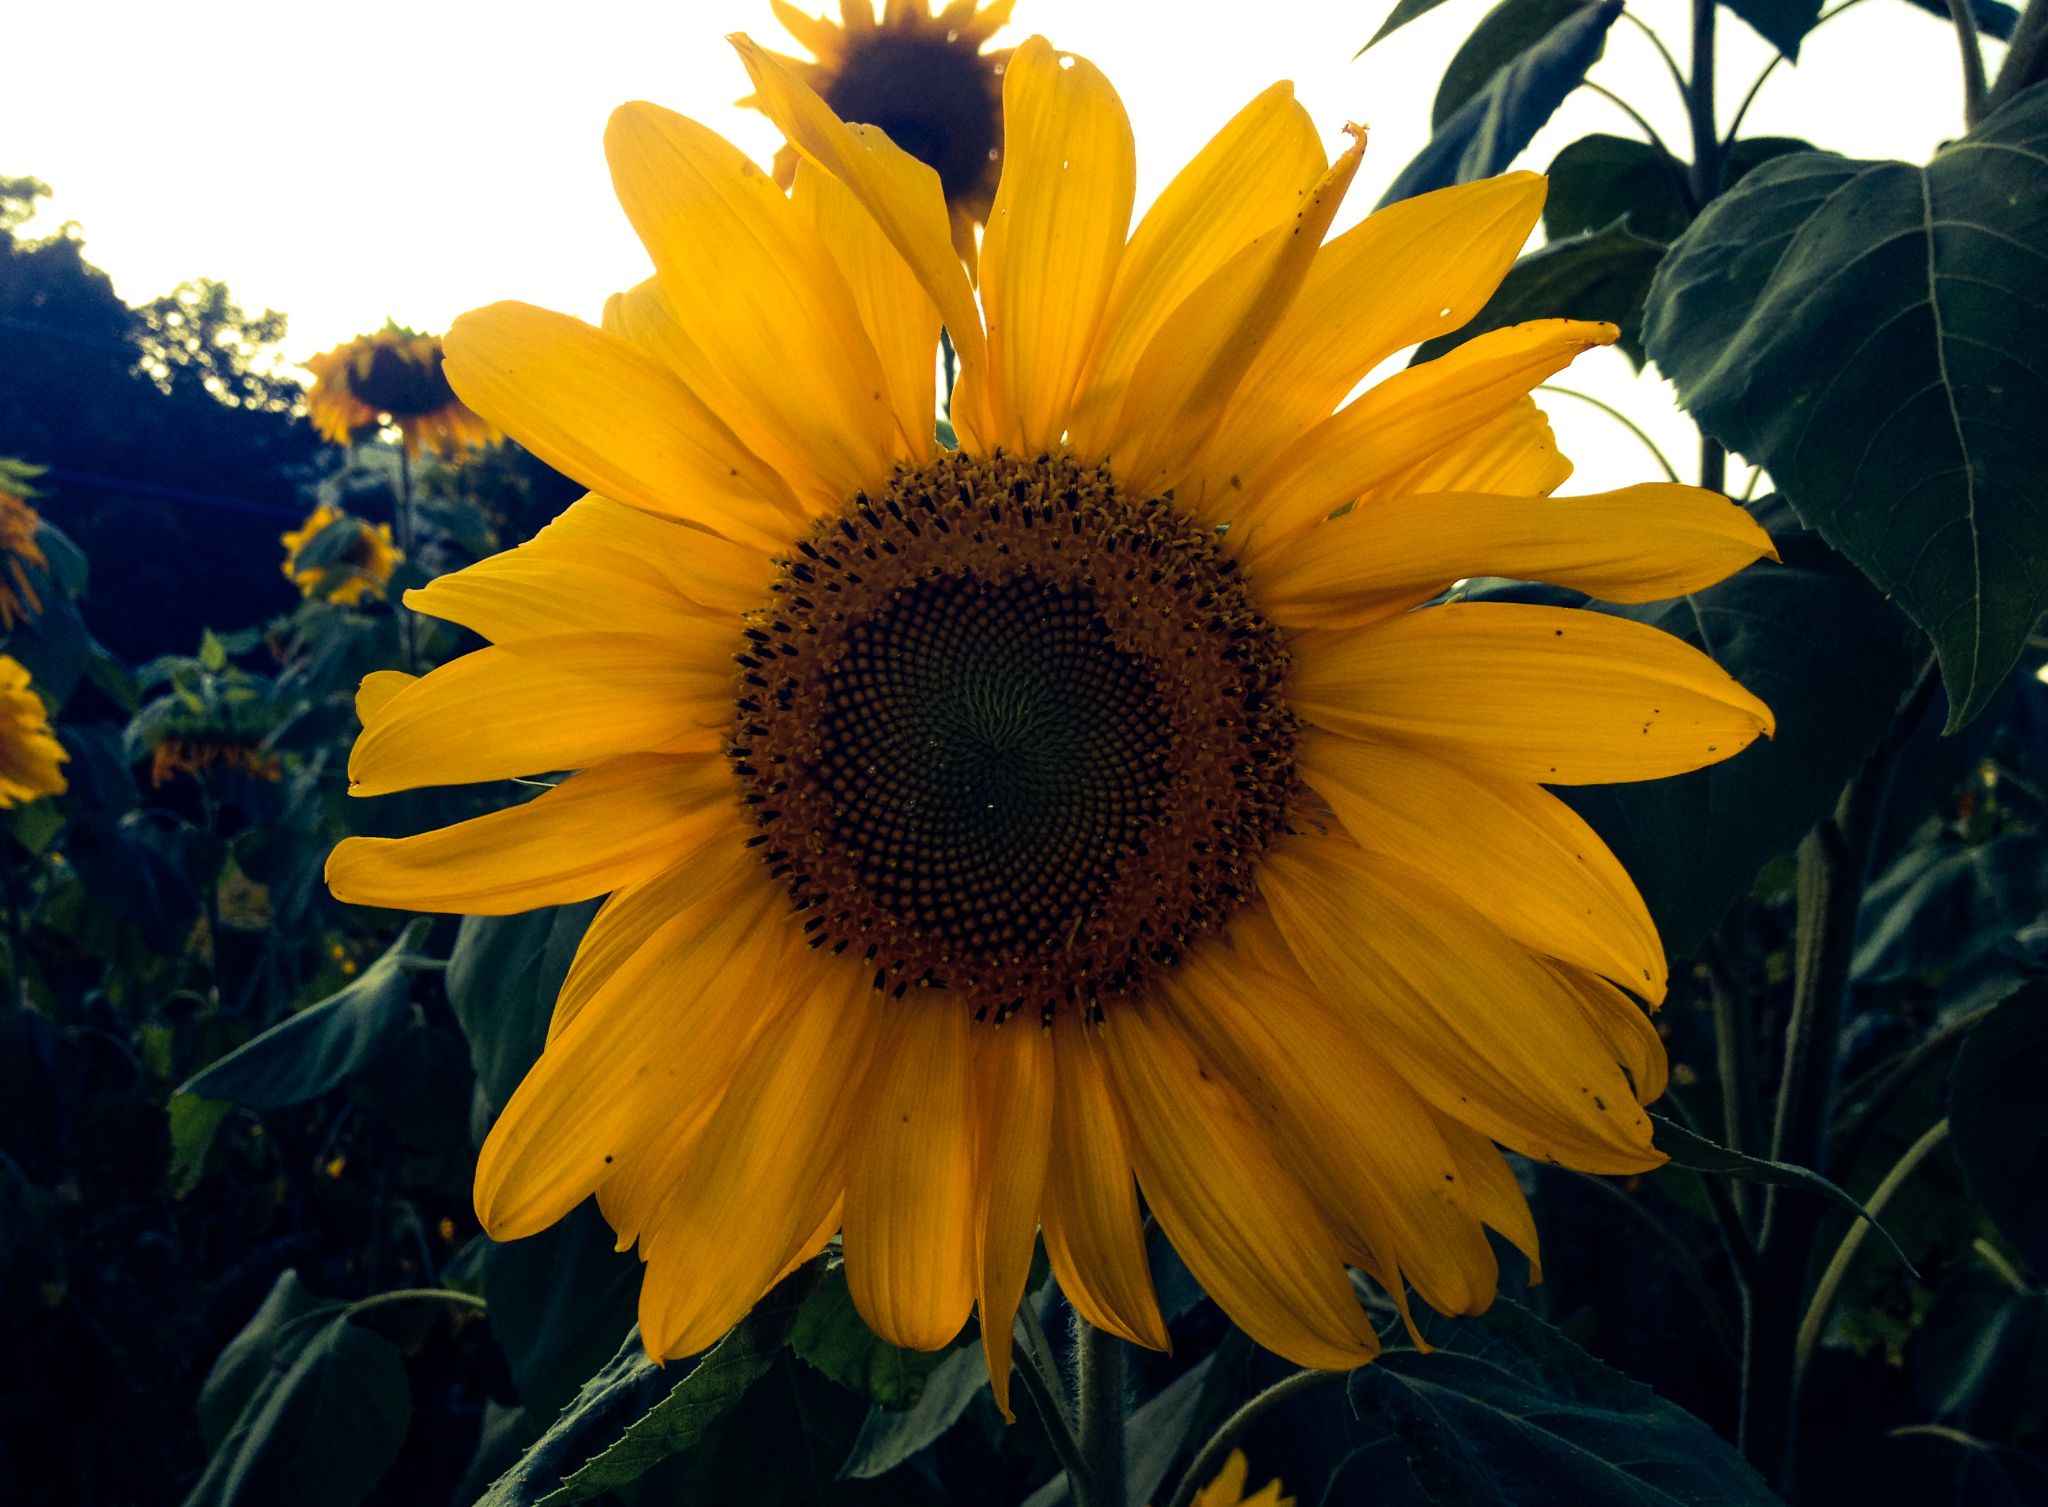 Sunflower by Ruth Silvers